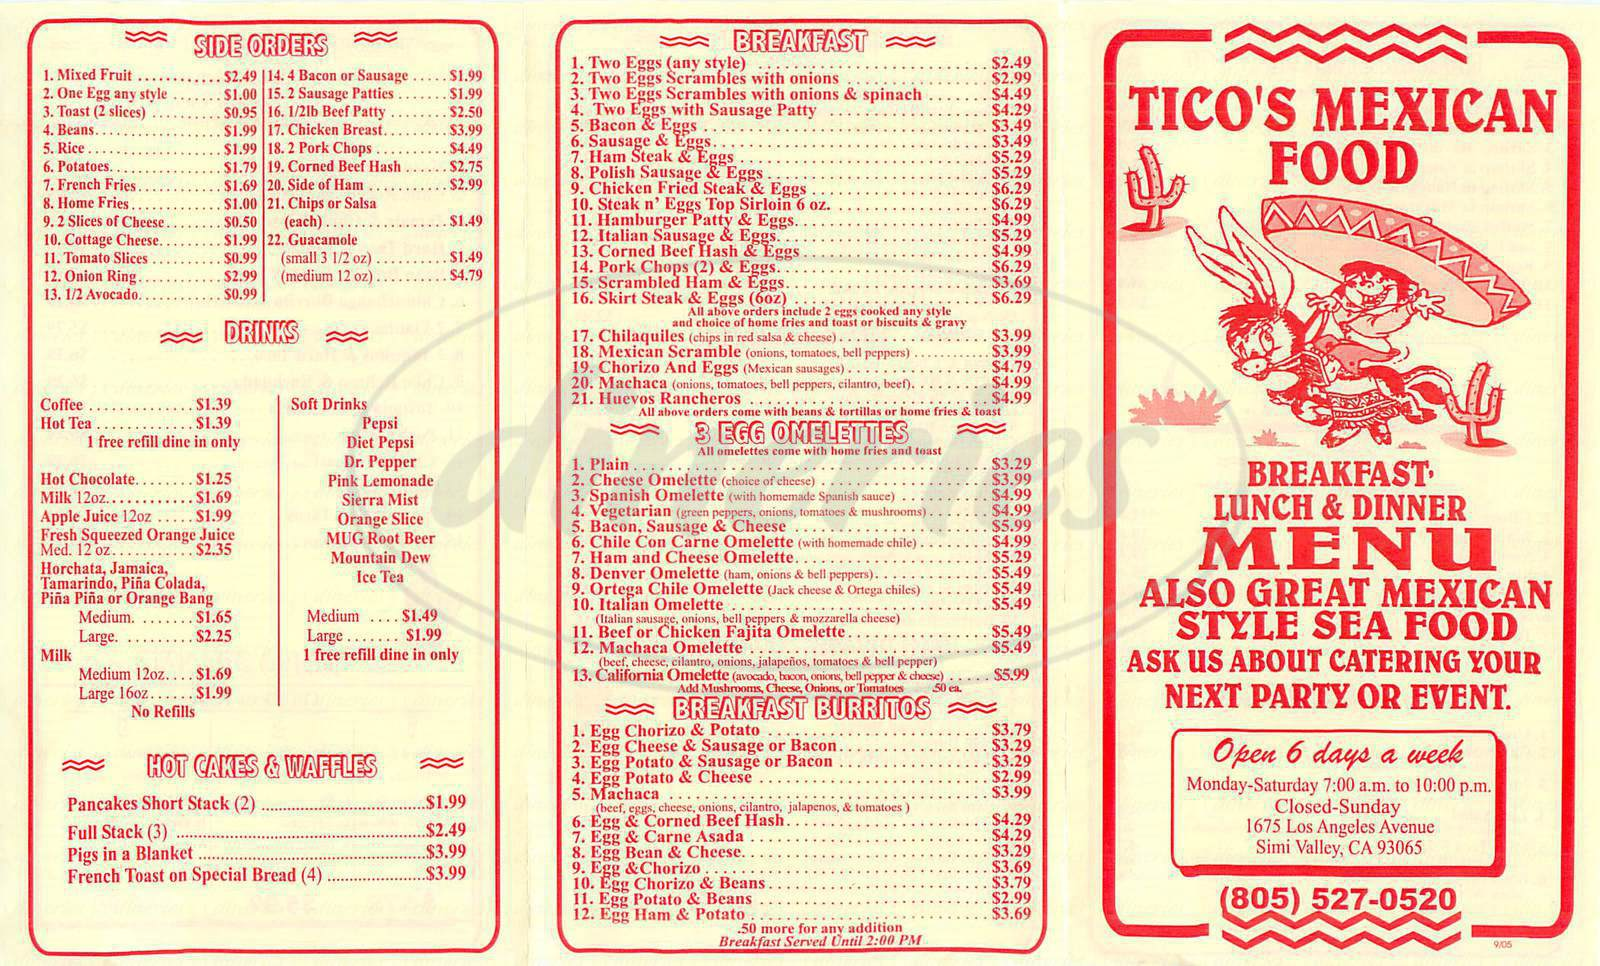 menu for Ticos Mexican Food